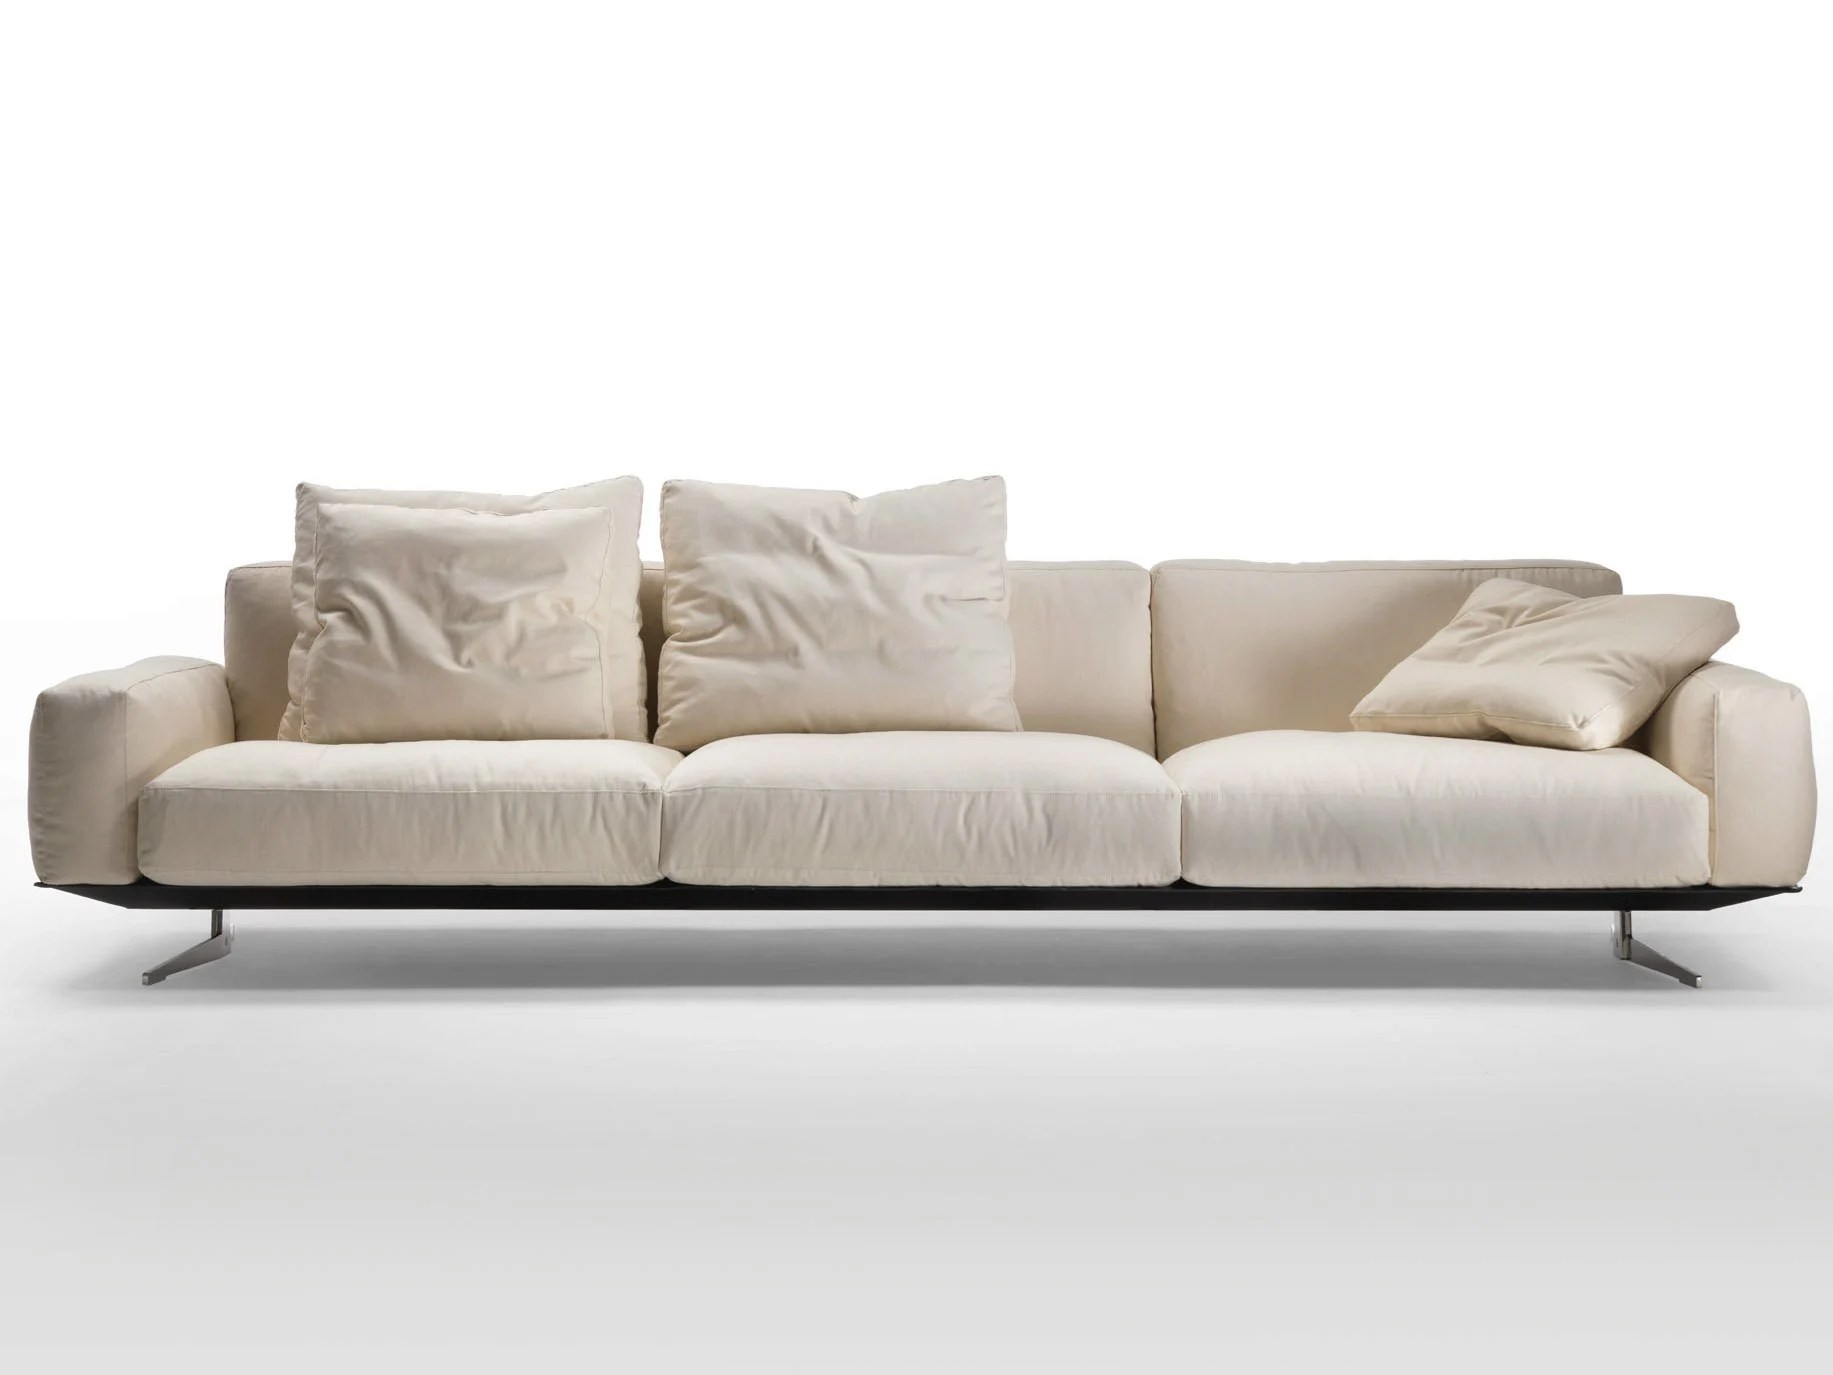 Sofa Dreams France Soft Dream Fabric Sofa By Flexform Design Antonio Citterio